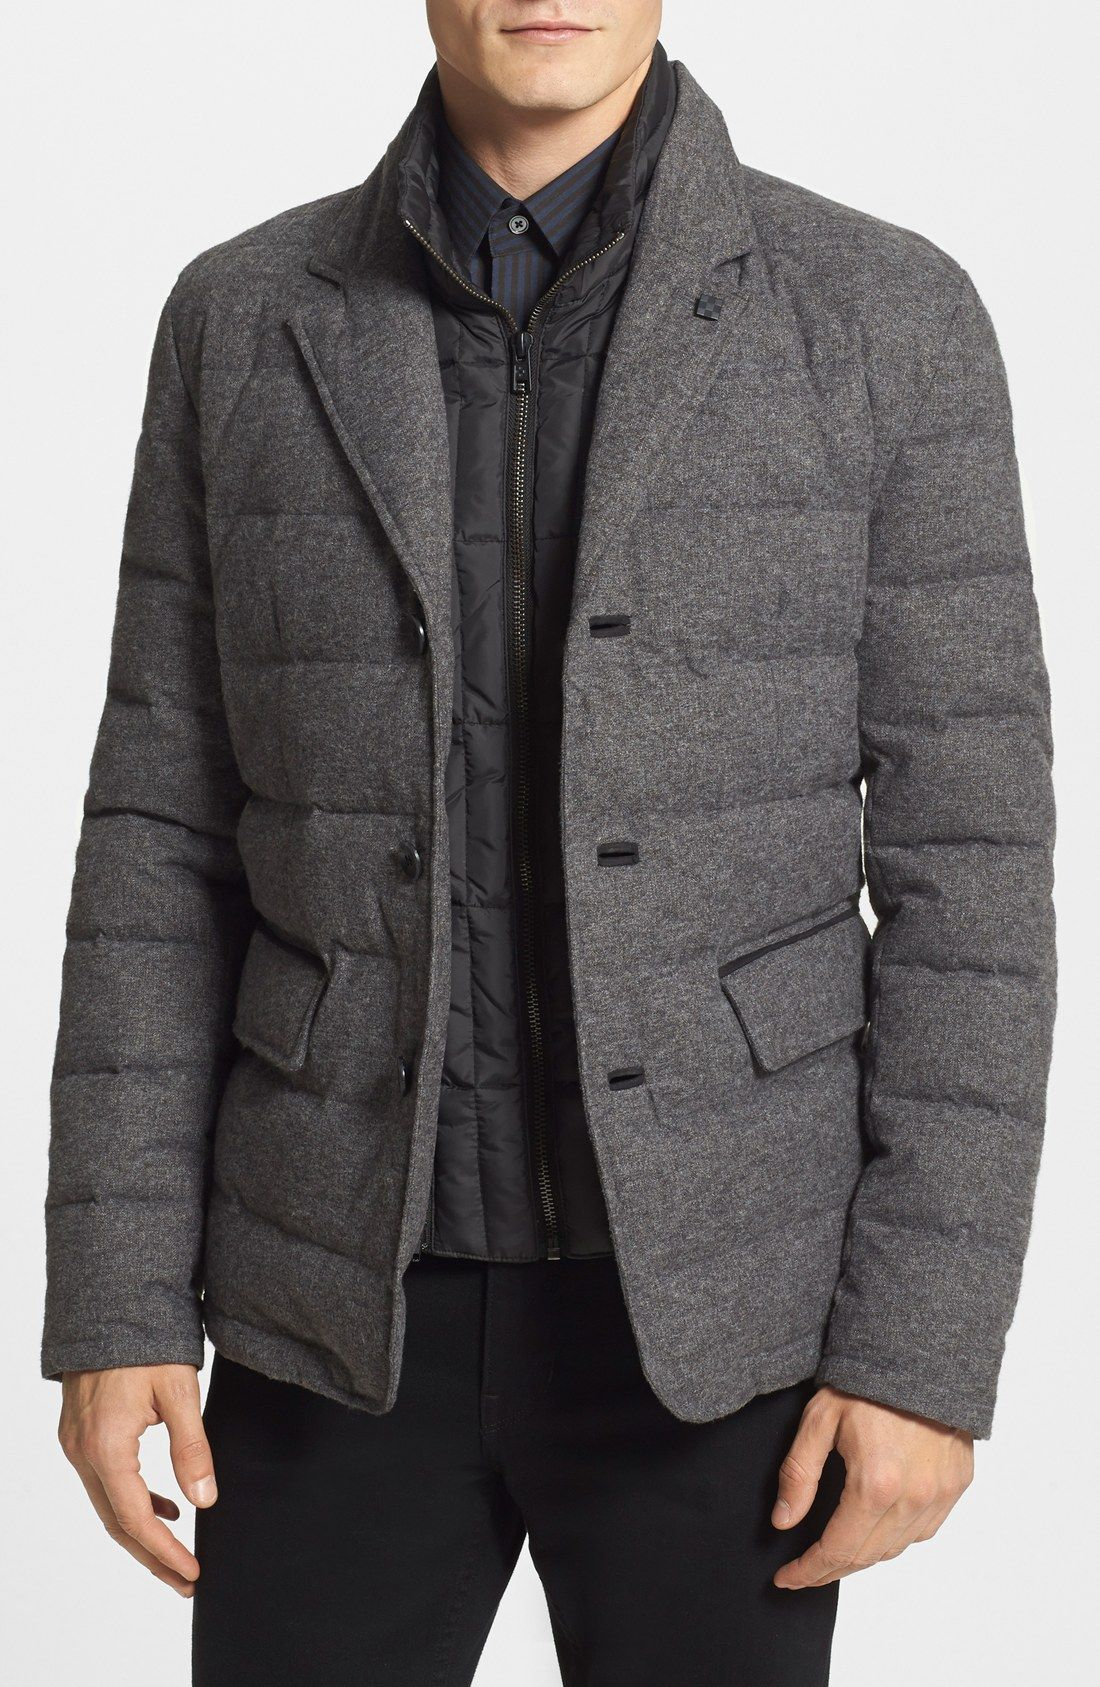 Vince Camuto Flannel Quilted Down & Feather Jacket | Buy It ... : quilted down jacket mens - Adamdwight.com